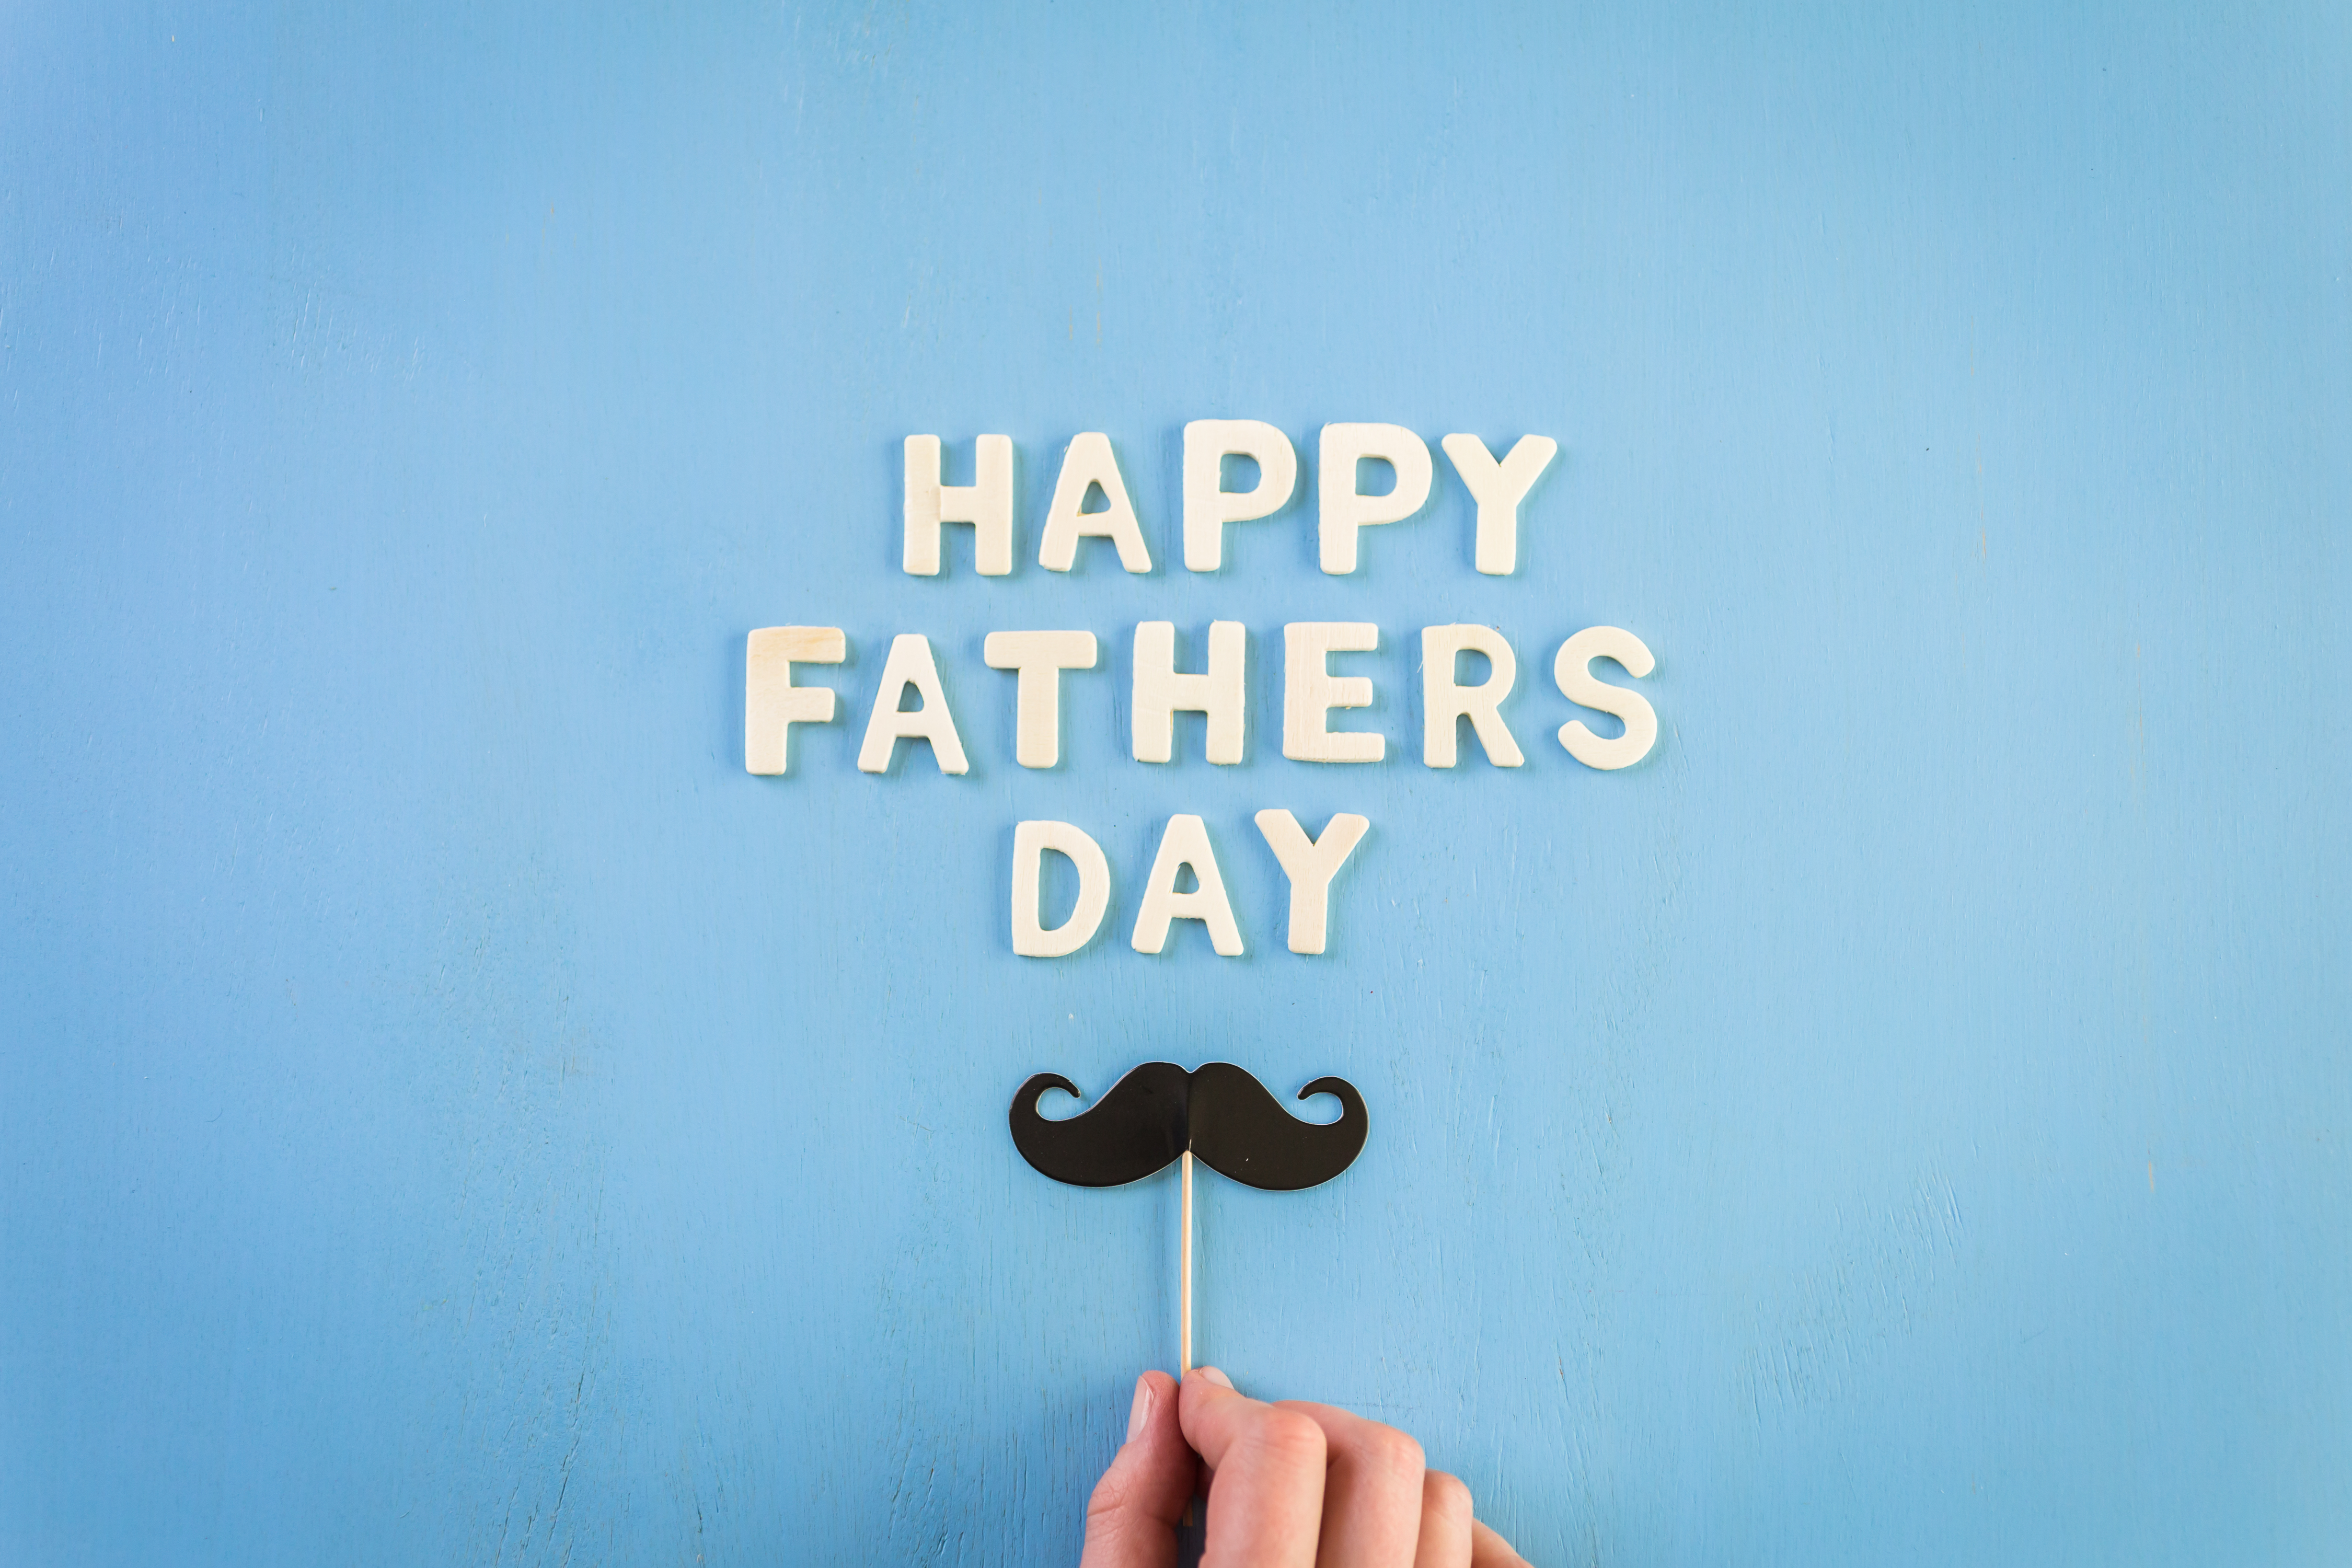 Unfinished wood lettrs sign Happy Father's Day on a painted wood background.